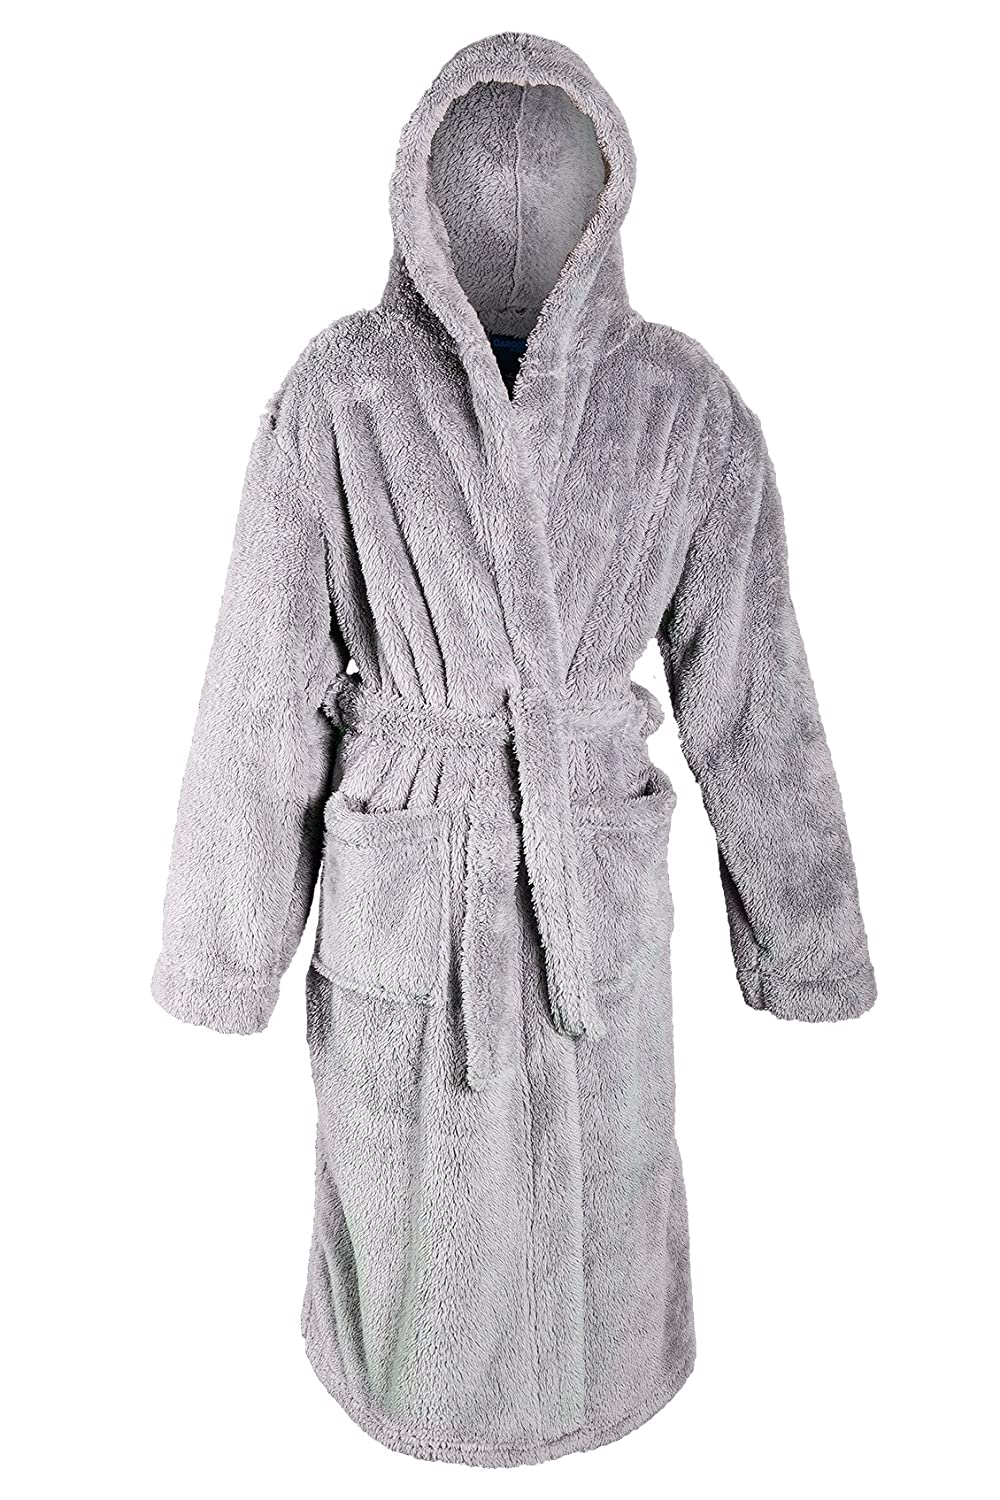 Strong Souls Boys Hooded Dressing Gown: Amazon.co.uk: Clothing